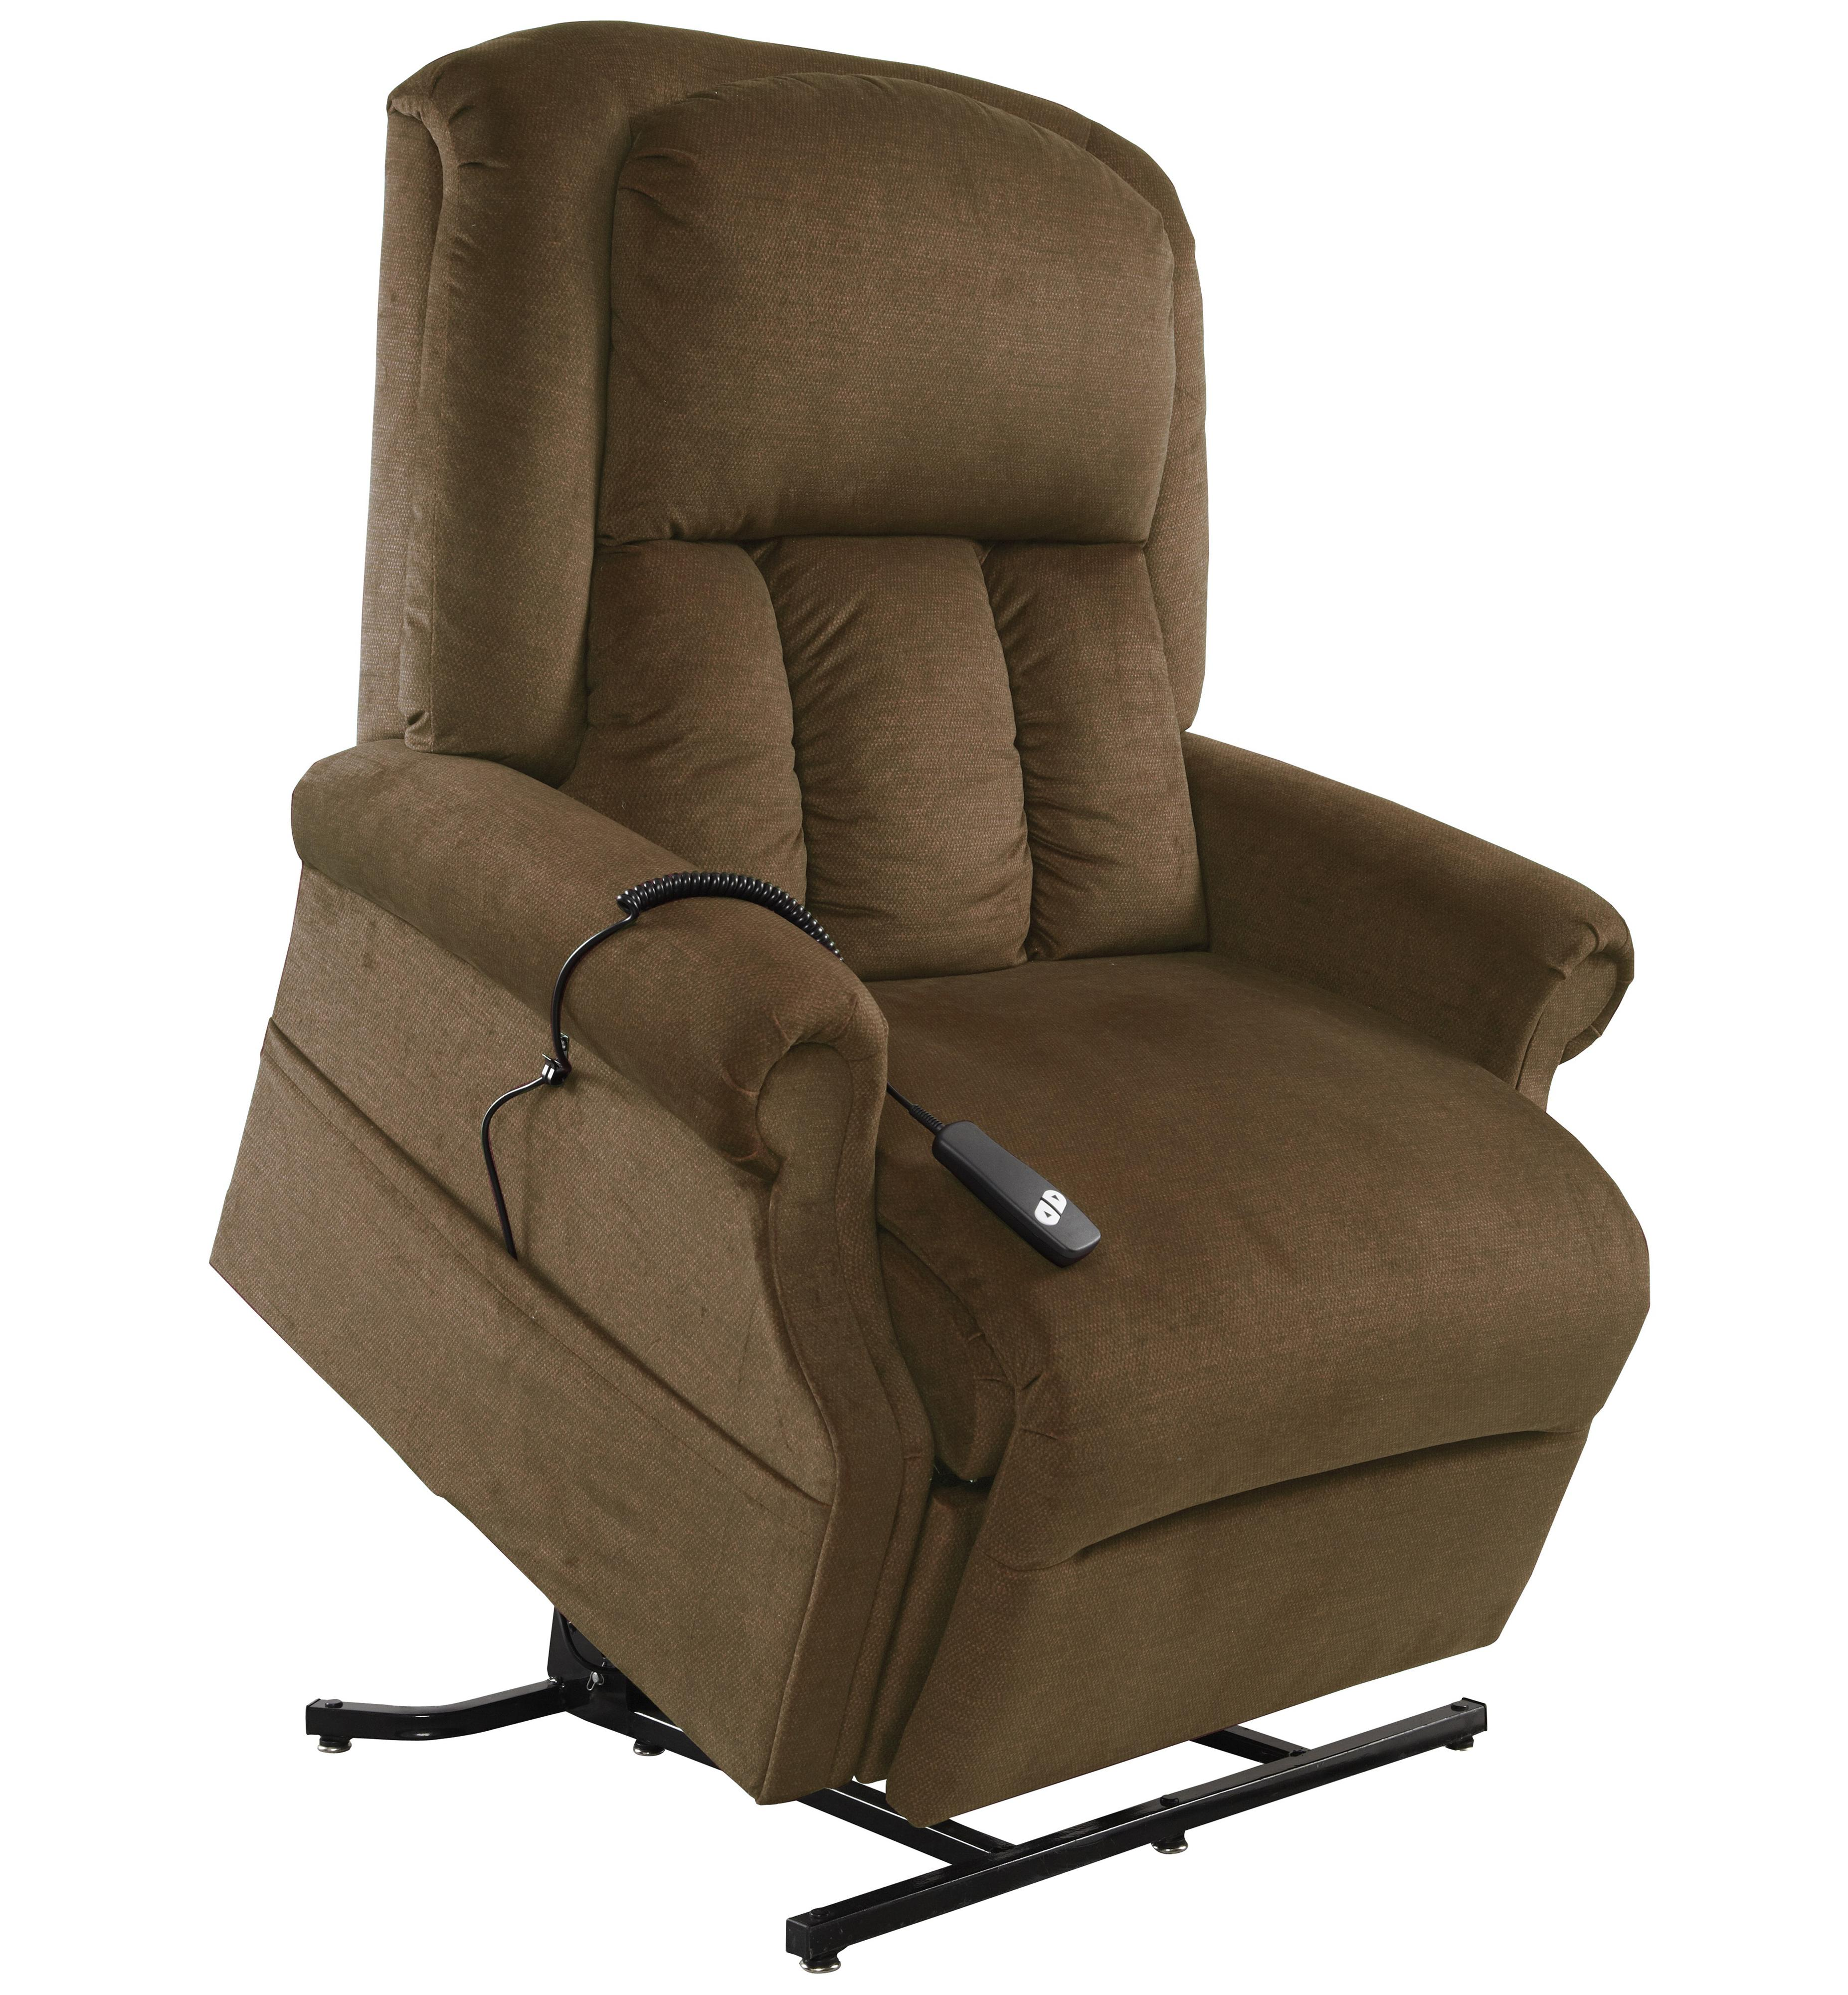 Windermere motion lift chairs 3 position reclining lift for Recliner lift chair